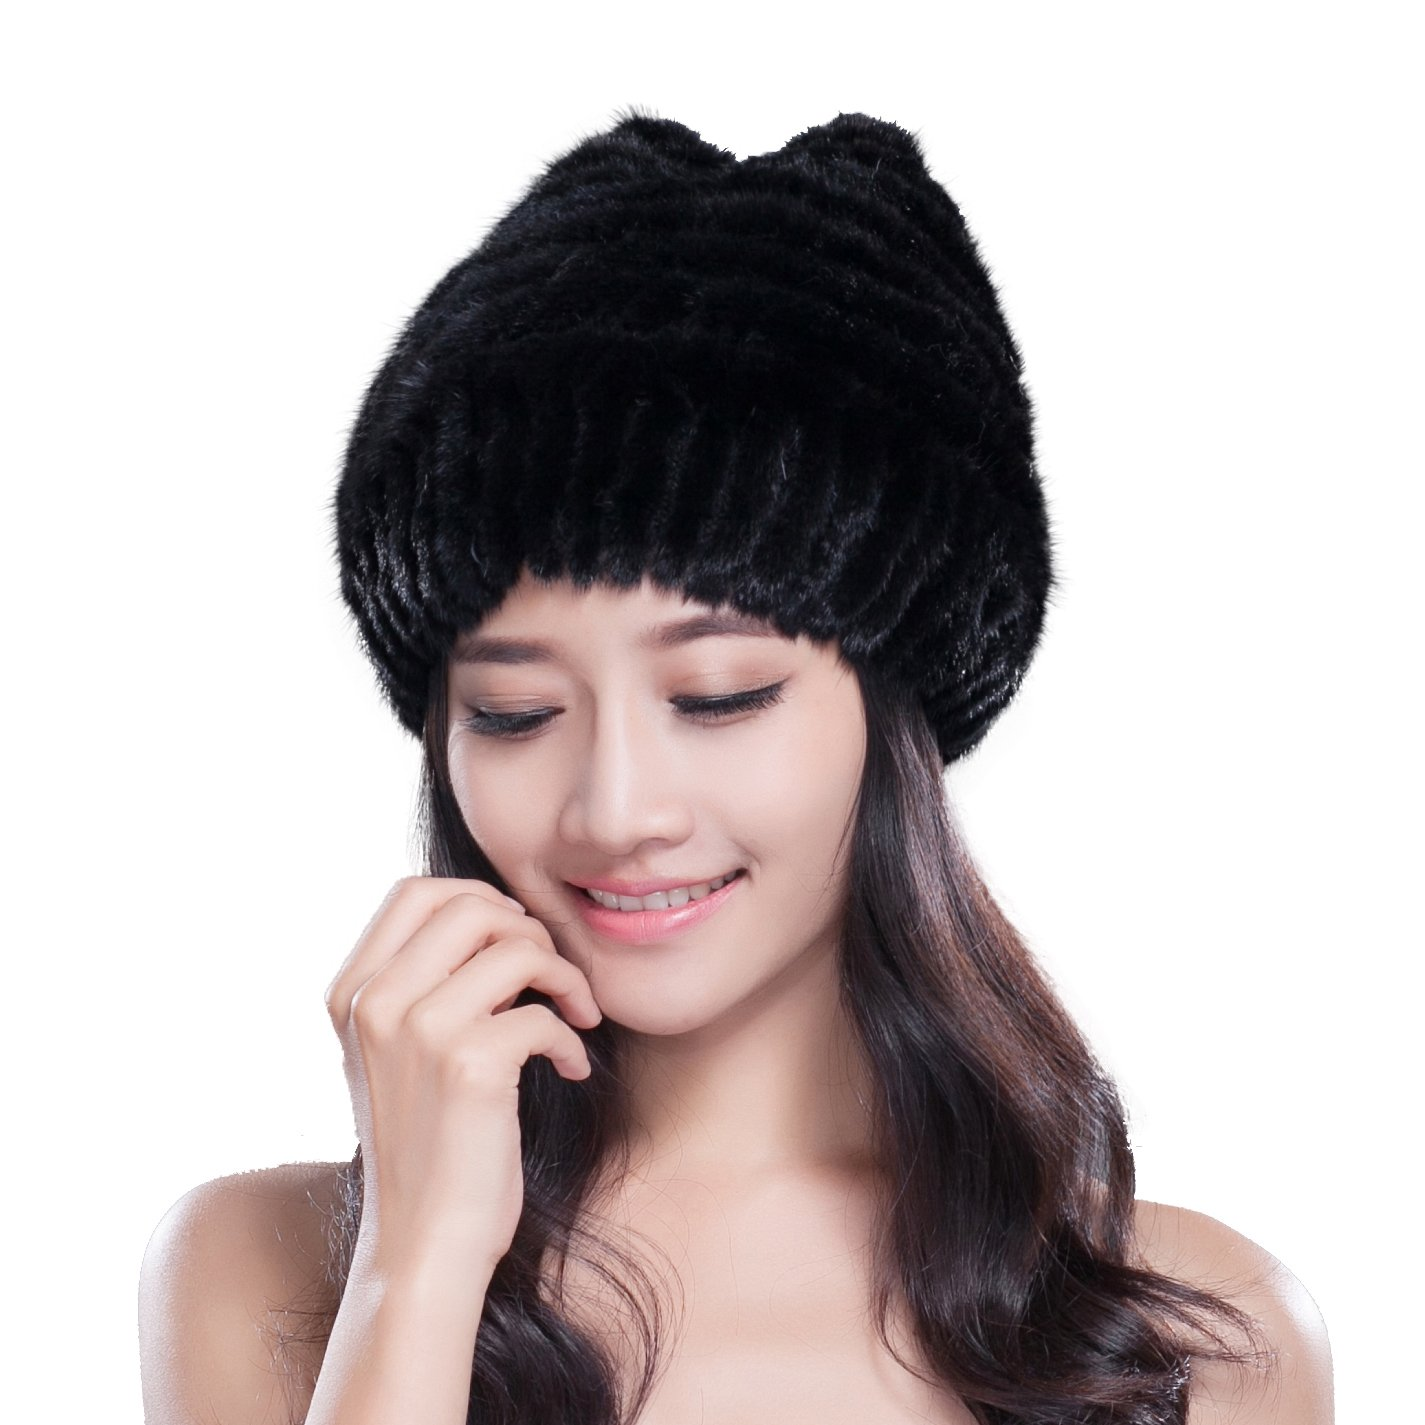 URSFUR Knited Mink Fur Starfish Beanie Hat with Mink Fur Pom Poms (One Size Fits All, Black)